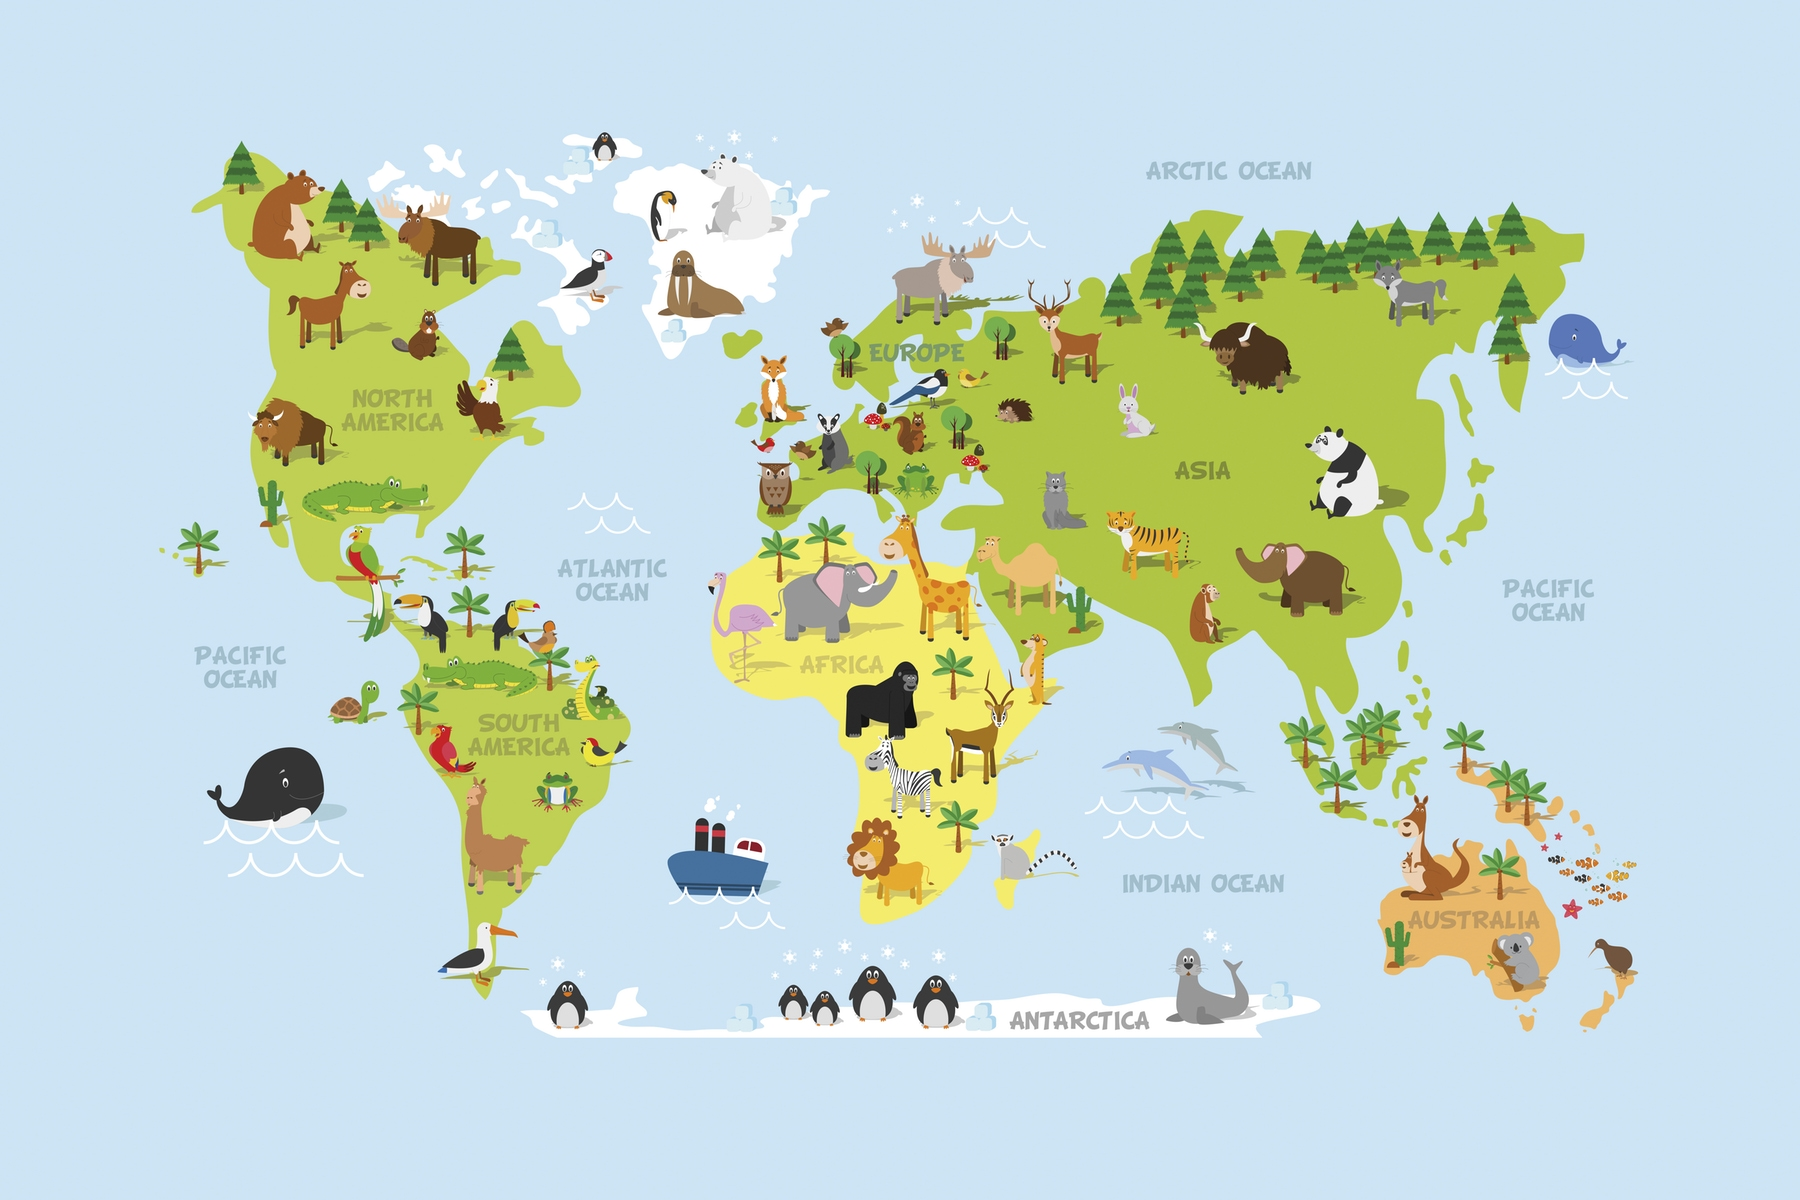 Buy World map kids wall mural - Free US shipping at Happywall.com